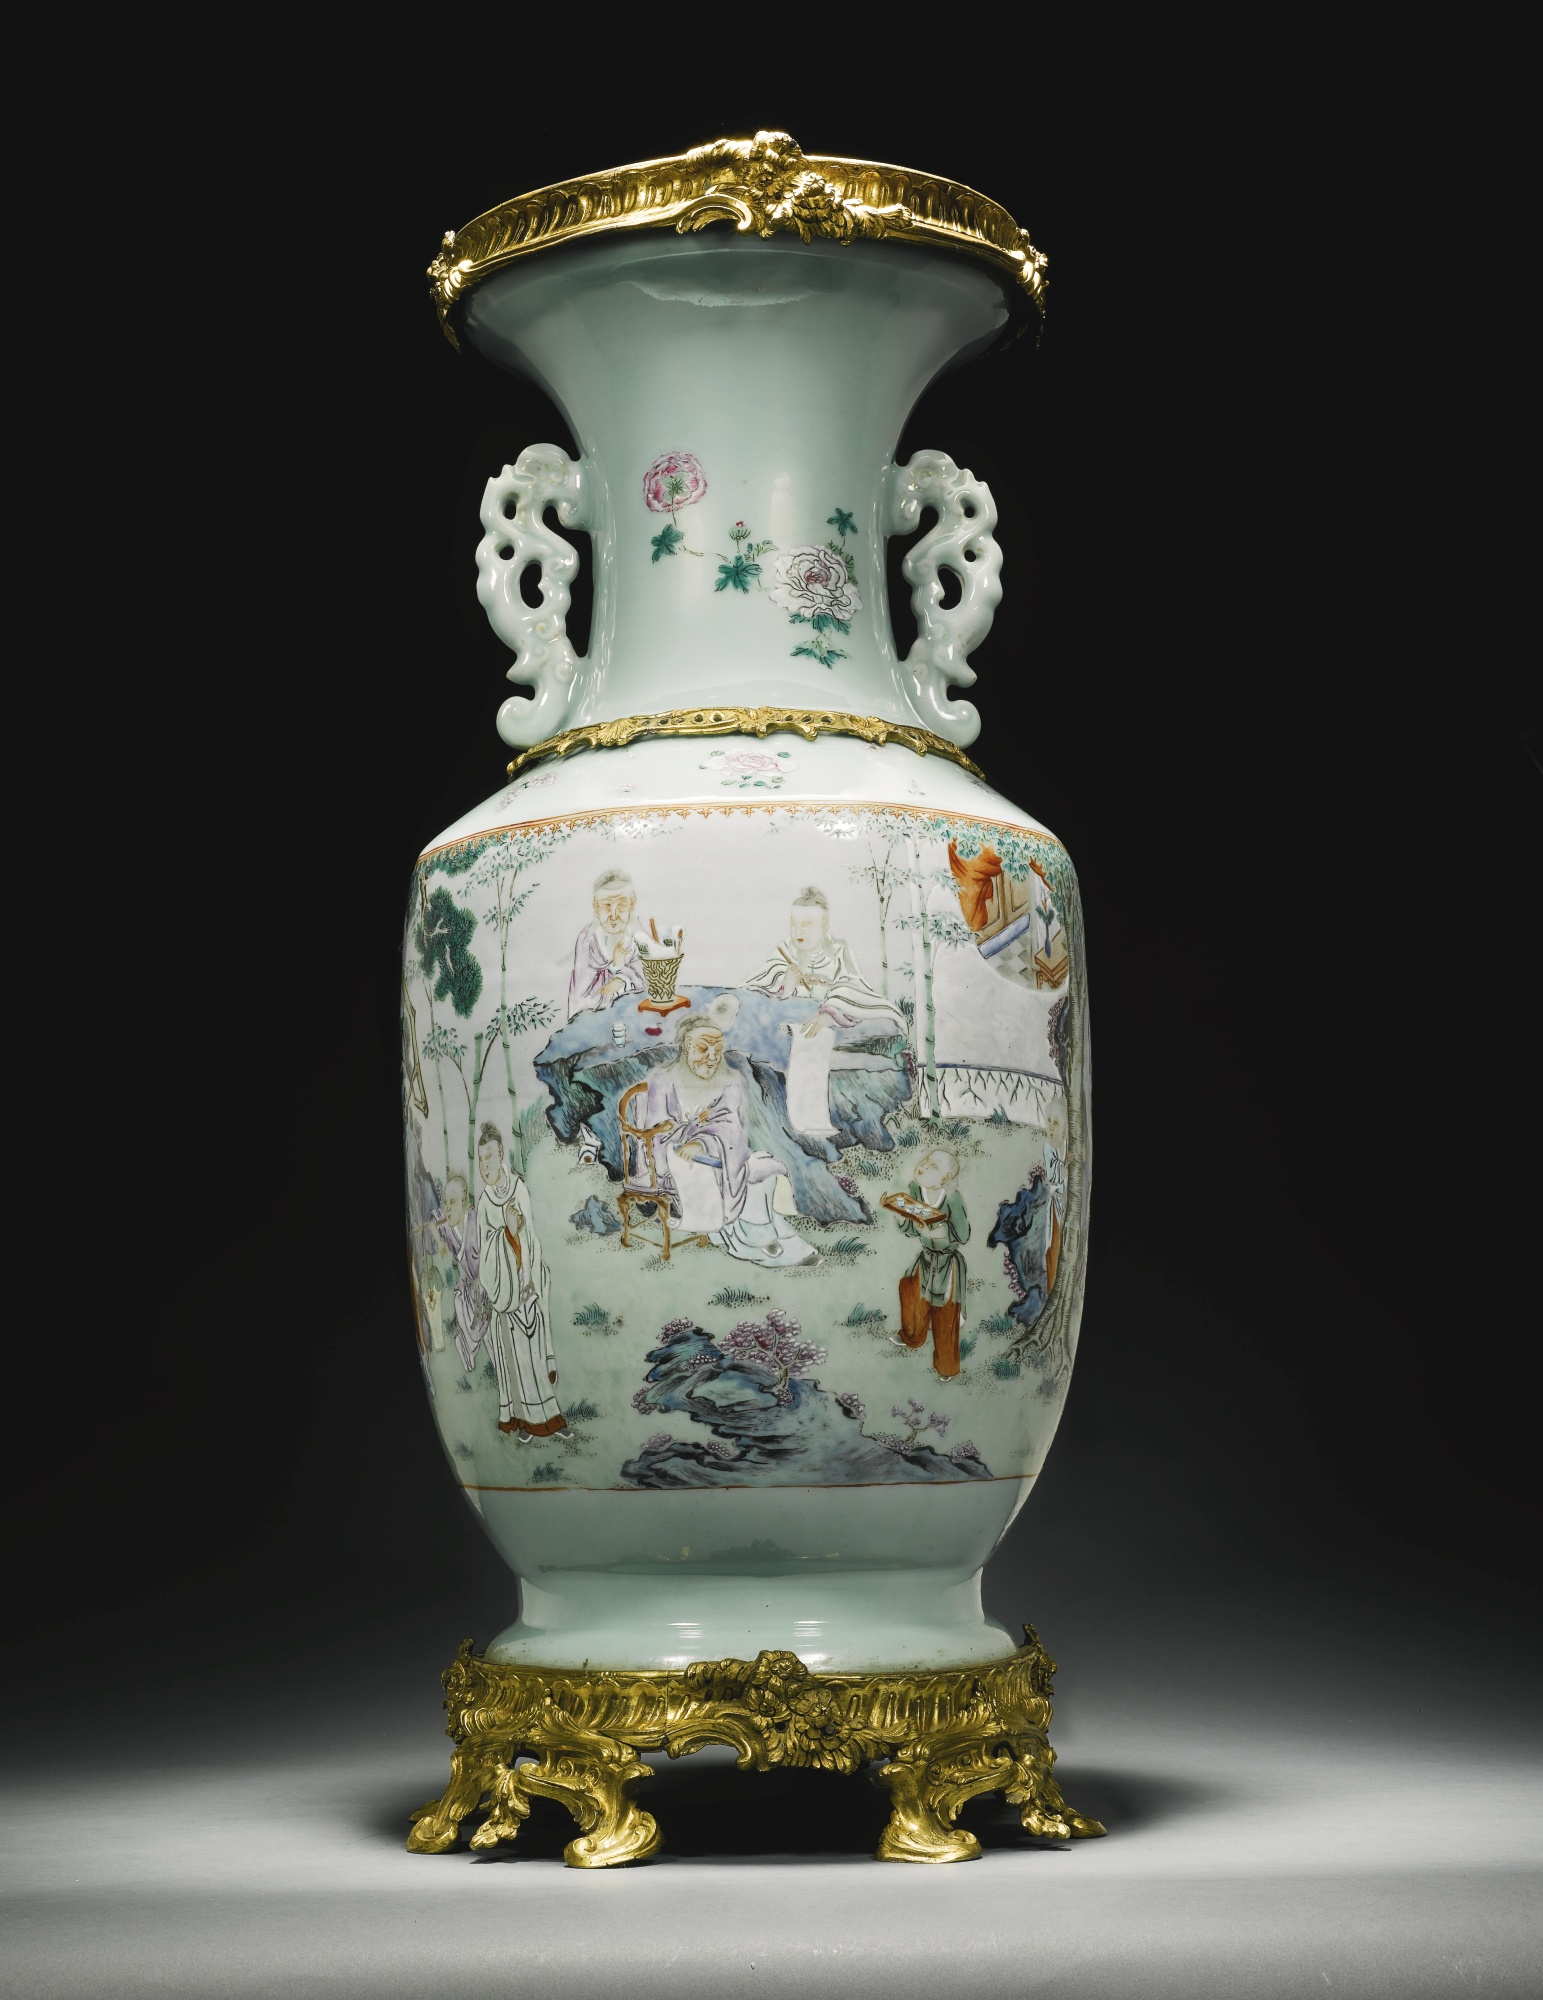 Chinese porcelain vase  qing dynasty  mid 18th century